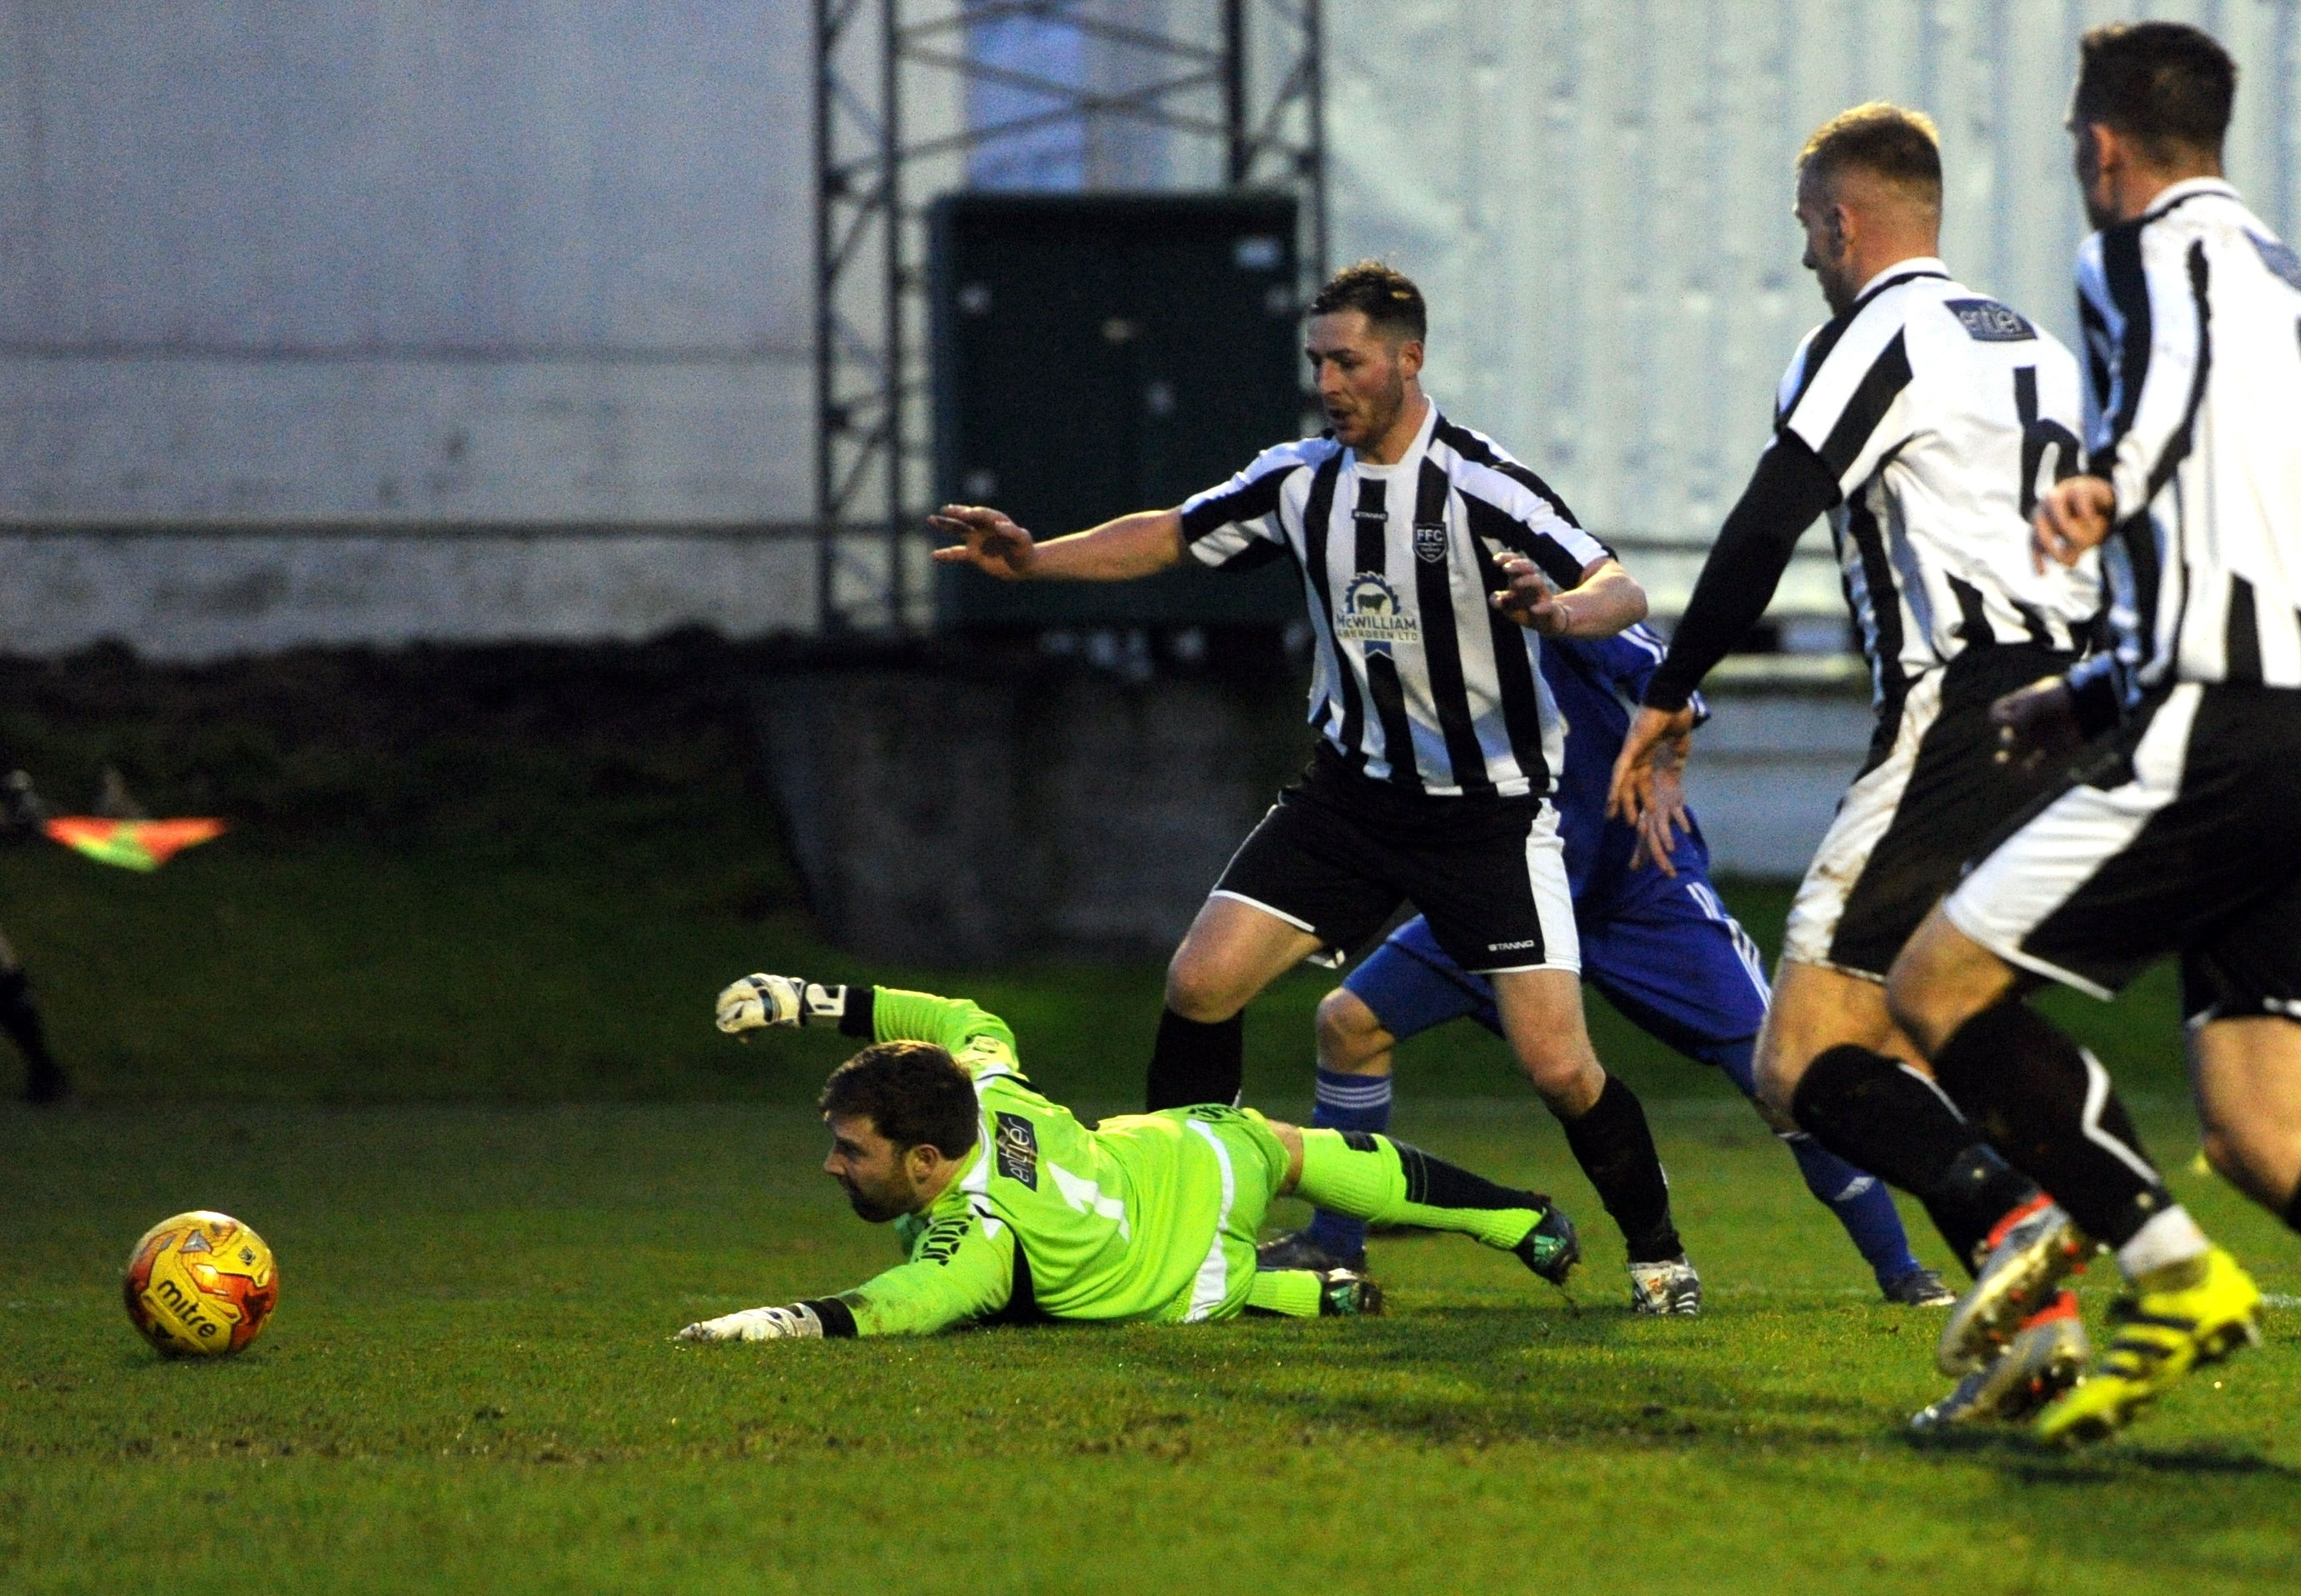 Paul Leask in action for Fraserburgh